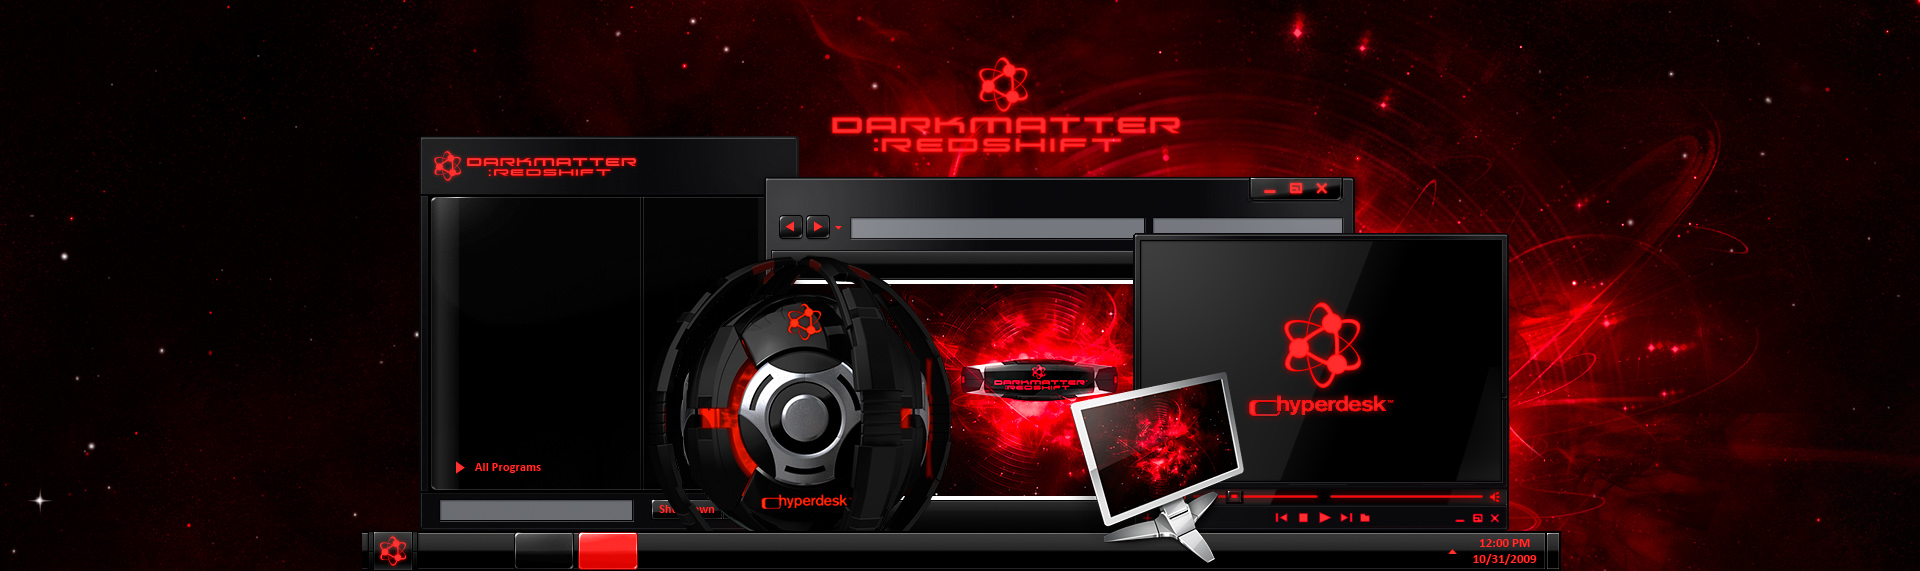 DarkMatter: RedShift  Client: The Skins Factory  From the artists who created Alienware's phenomenally popular desktop themes comes an invasion of galactically cool desktops - DarkMatter: Quadrilogy. DarkMatter: RedShift, is an unbelievably slick hypersuite that completely transforms Windows XP / Vista / 7, into a super-futuristic, hi-tech environment. Hyperdesk's DarkMatter: Subspace contains: an icon set, custom Wallpapers, Windows Media Player skin & a dynamic, animated iTunes / WMP audio remote widget. This desktop theme is no longer available.